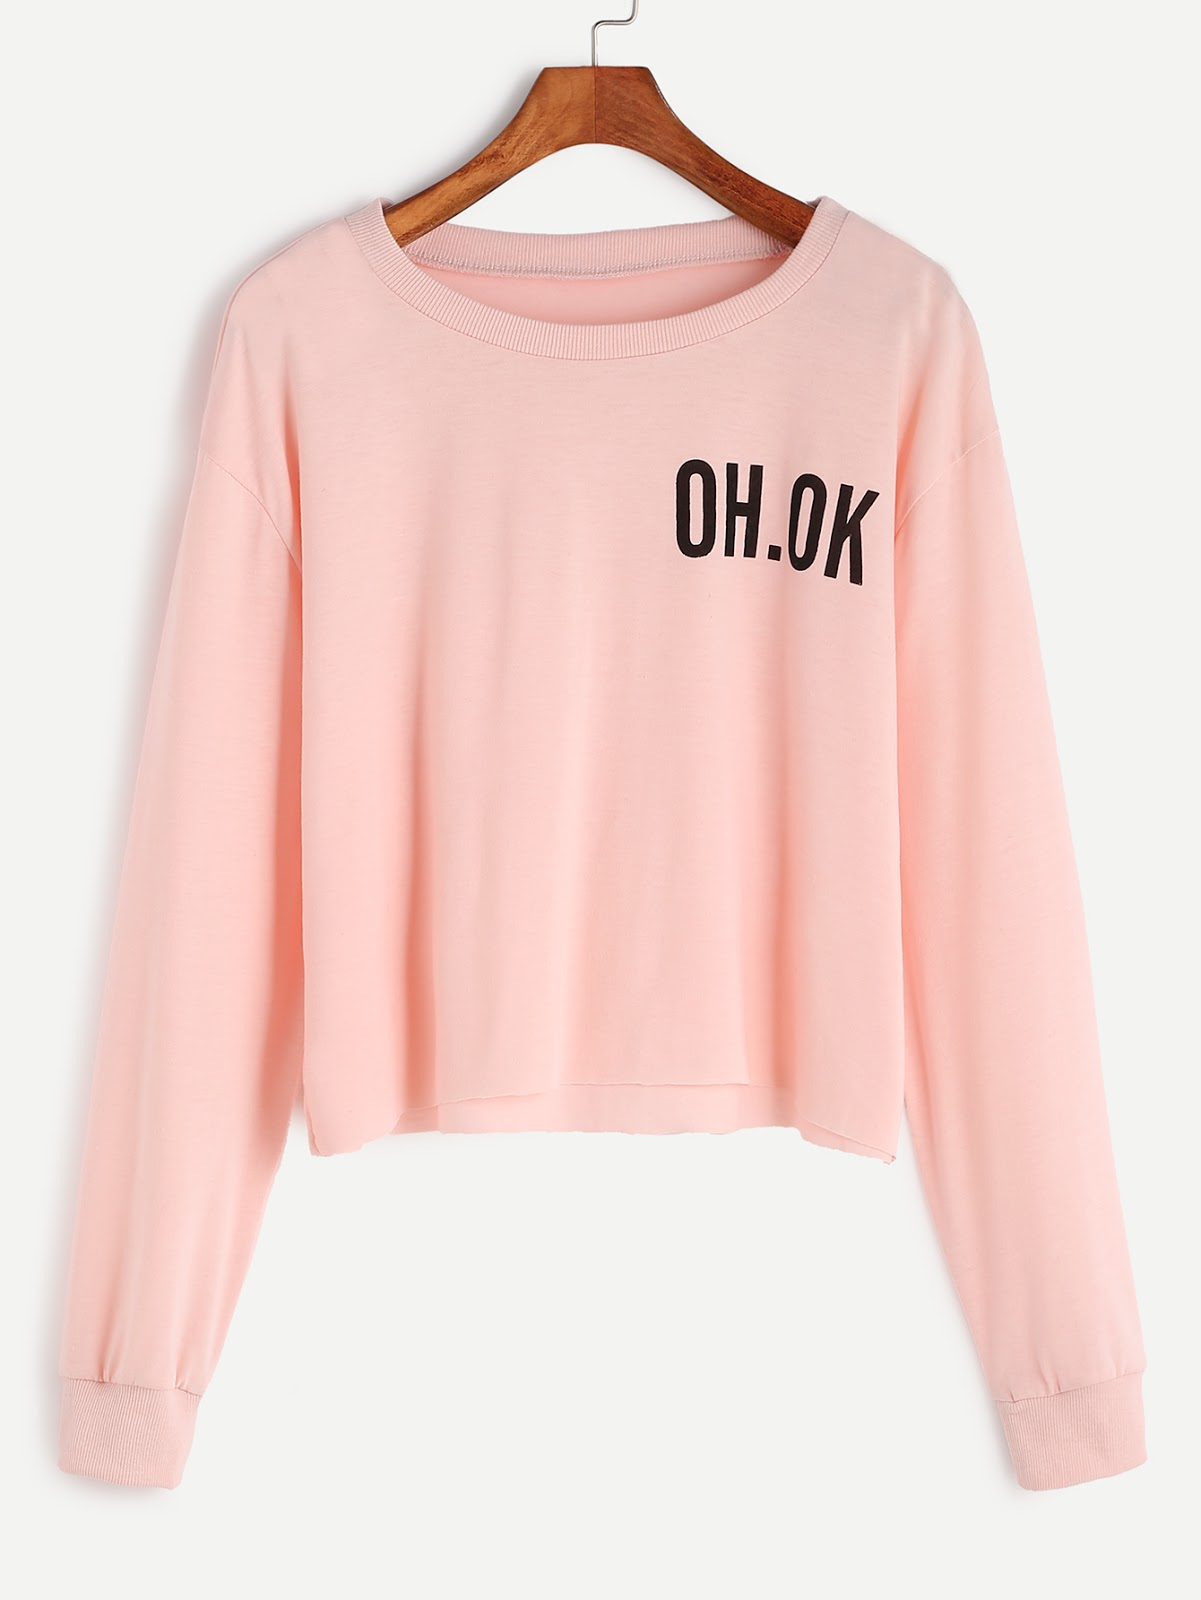 oh ok jumper sweatshirt cheap